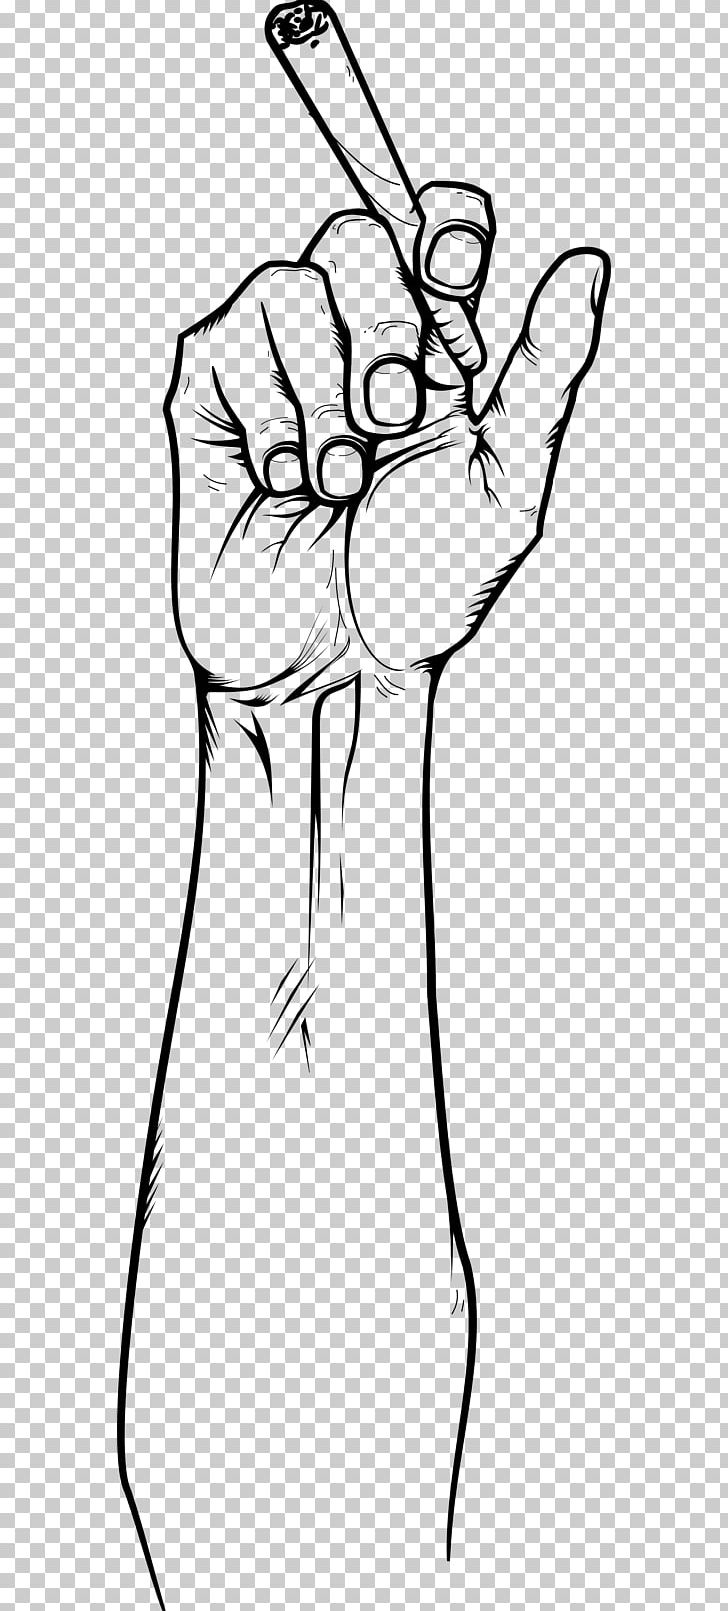 Blunt Joint Cannabis Smoking Hand Png Clipart Arm Art Black Black And White Blunt Free Png Seeking more png image arrow pointing right png,master hand png,dog paw print png? blunt joint cannabis smoking hand png